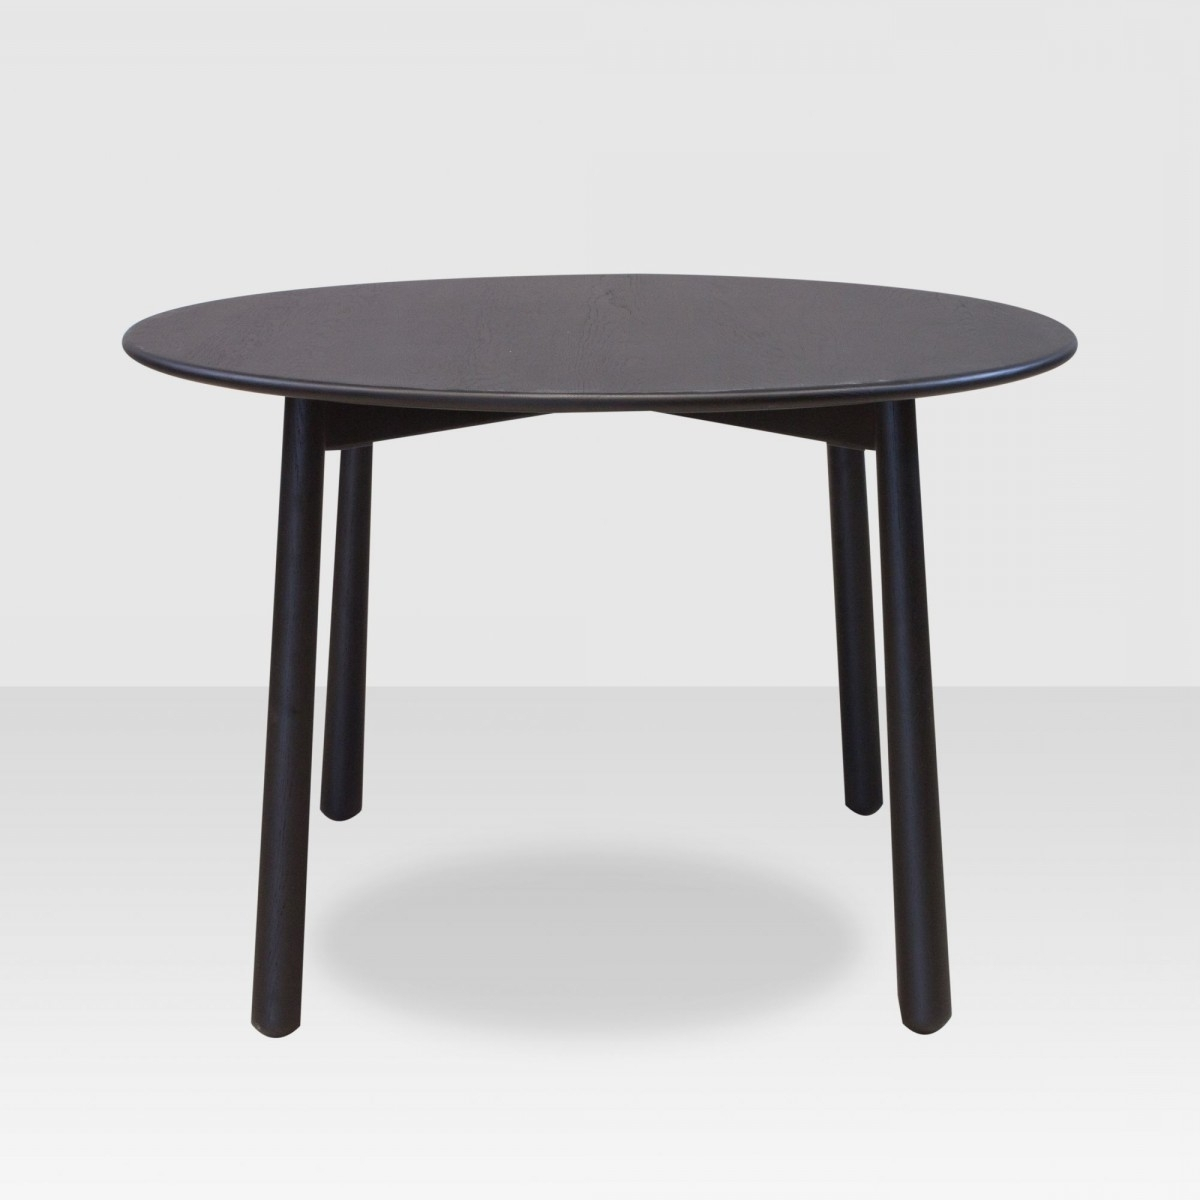 Nora Dining Tables Throughout Most Up To Date Nora Dining Table – Elte Market (View 18 of 25)